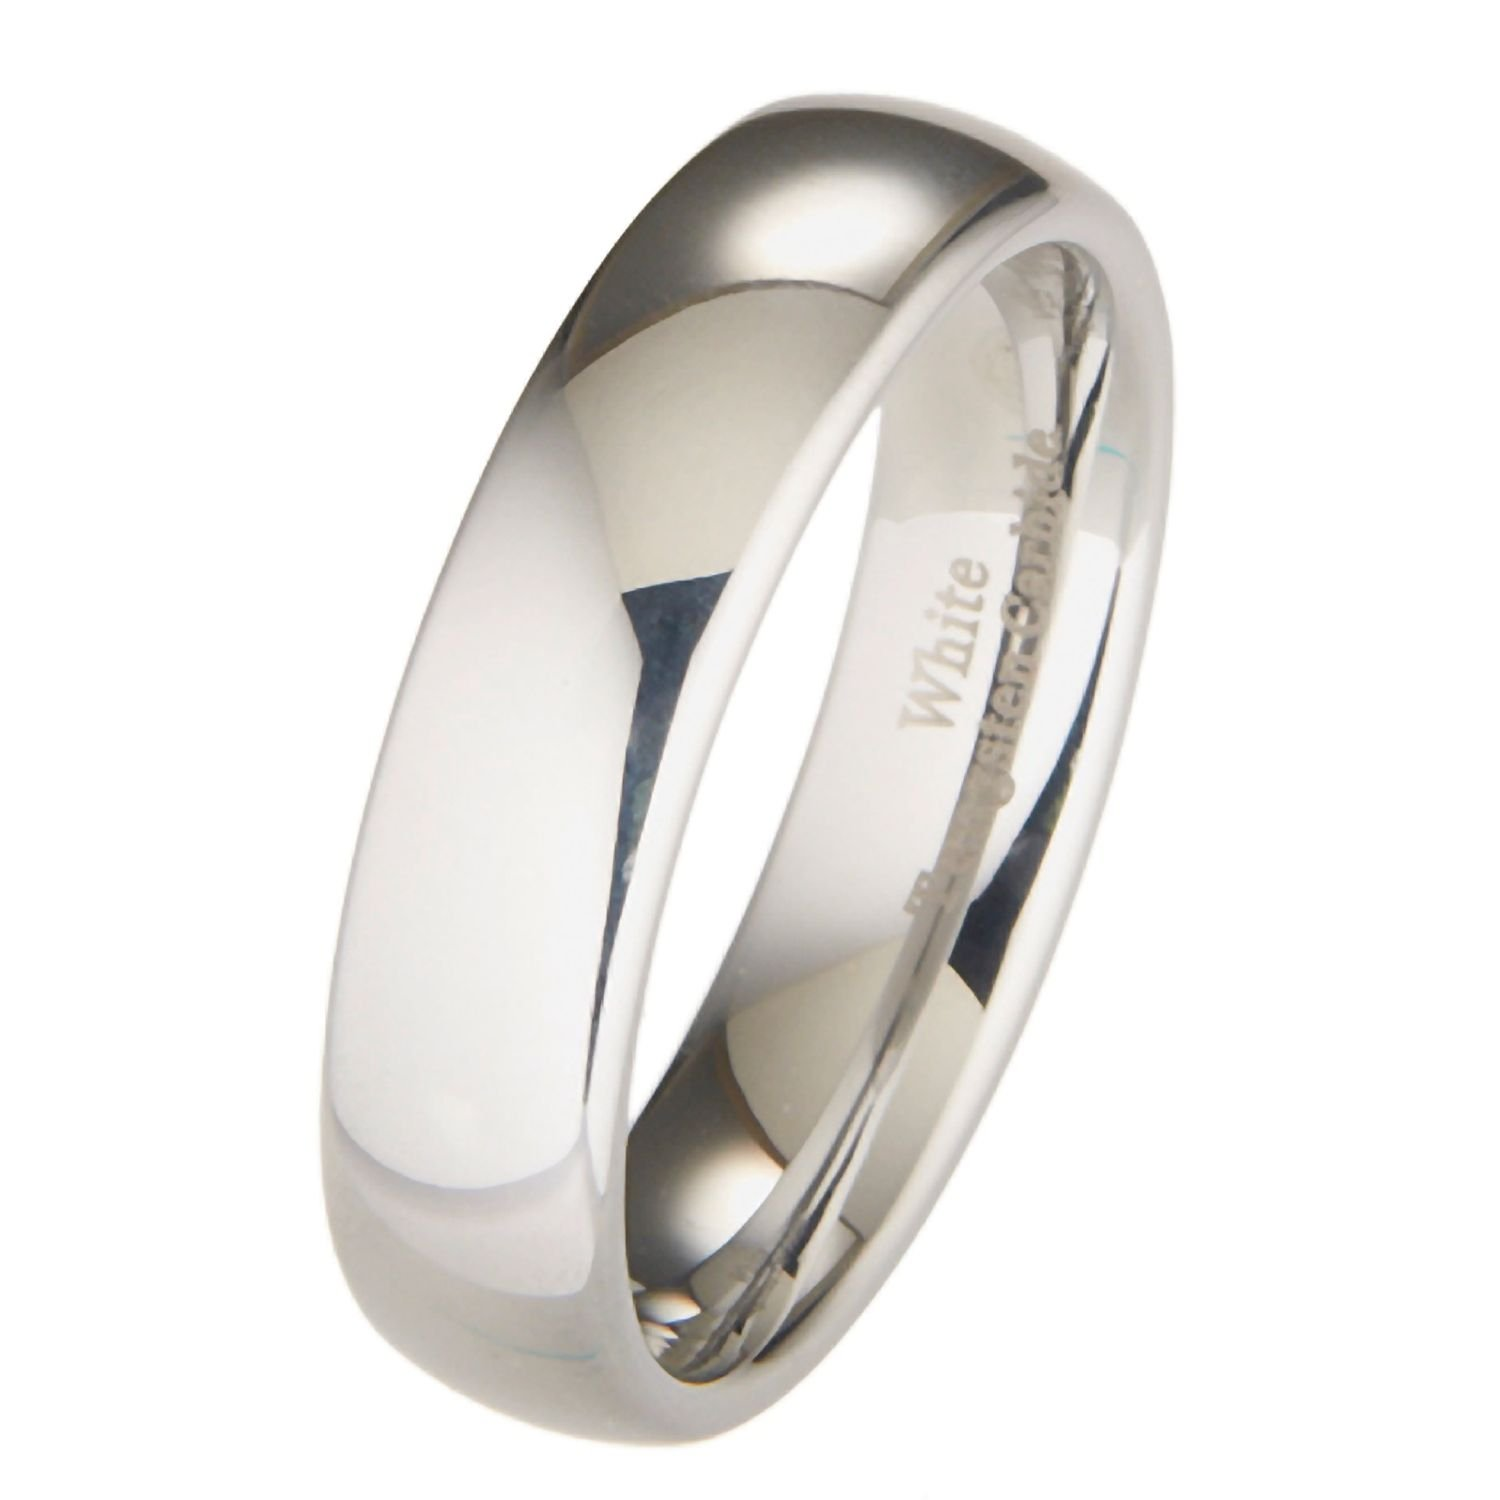 MJ Metals Jewelry Custom Engraved 6mm White Tungsten Carbide Polished Classic Wedding Ring Size 12